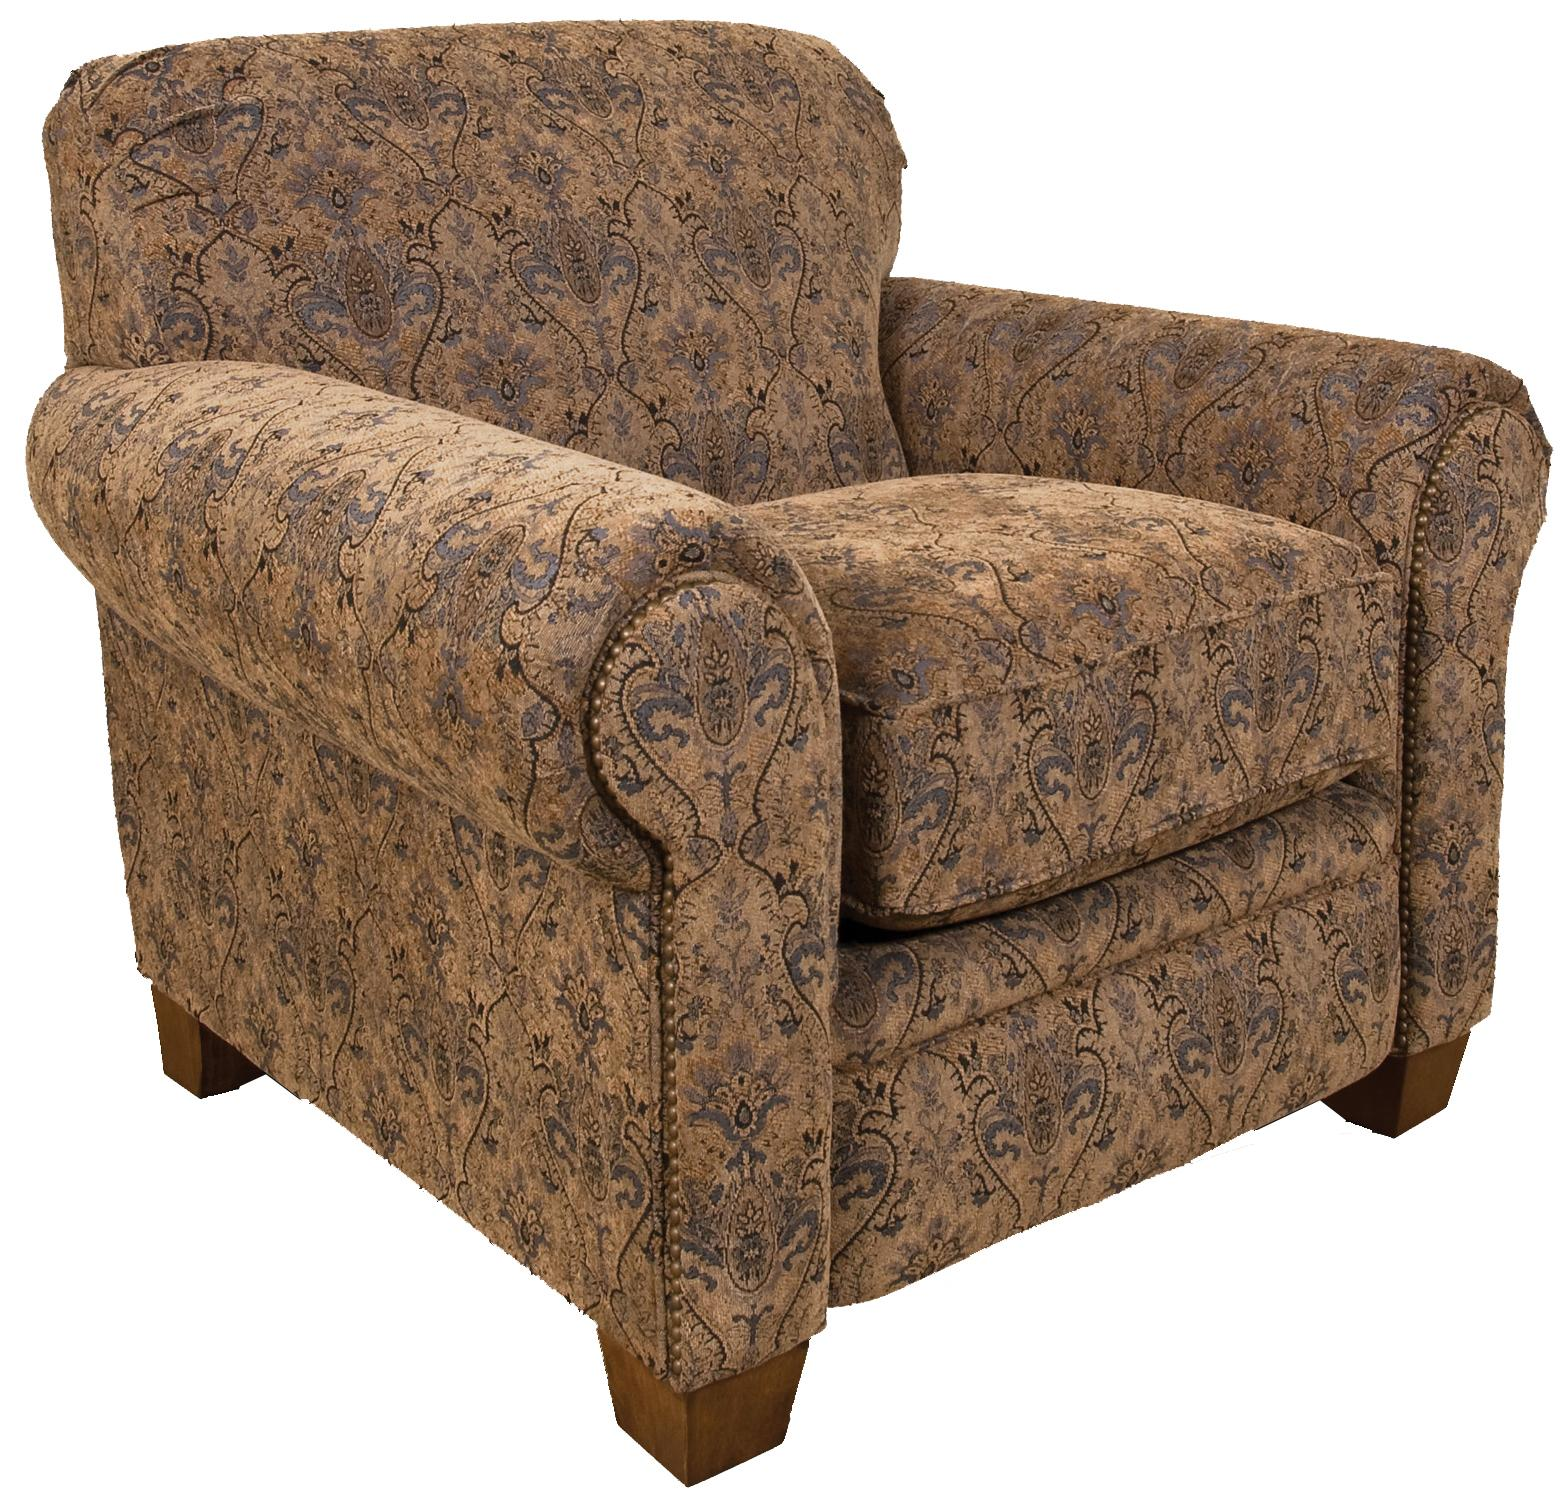 England Philip Chair - Item Number: 1254